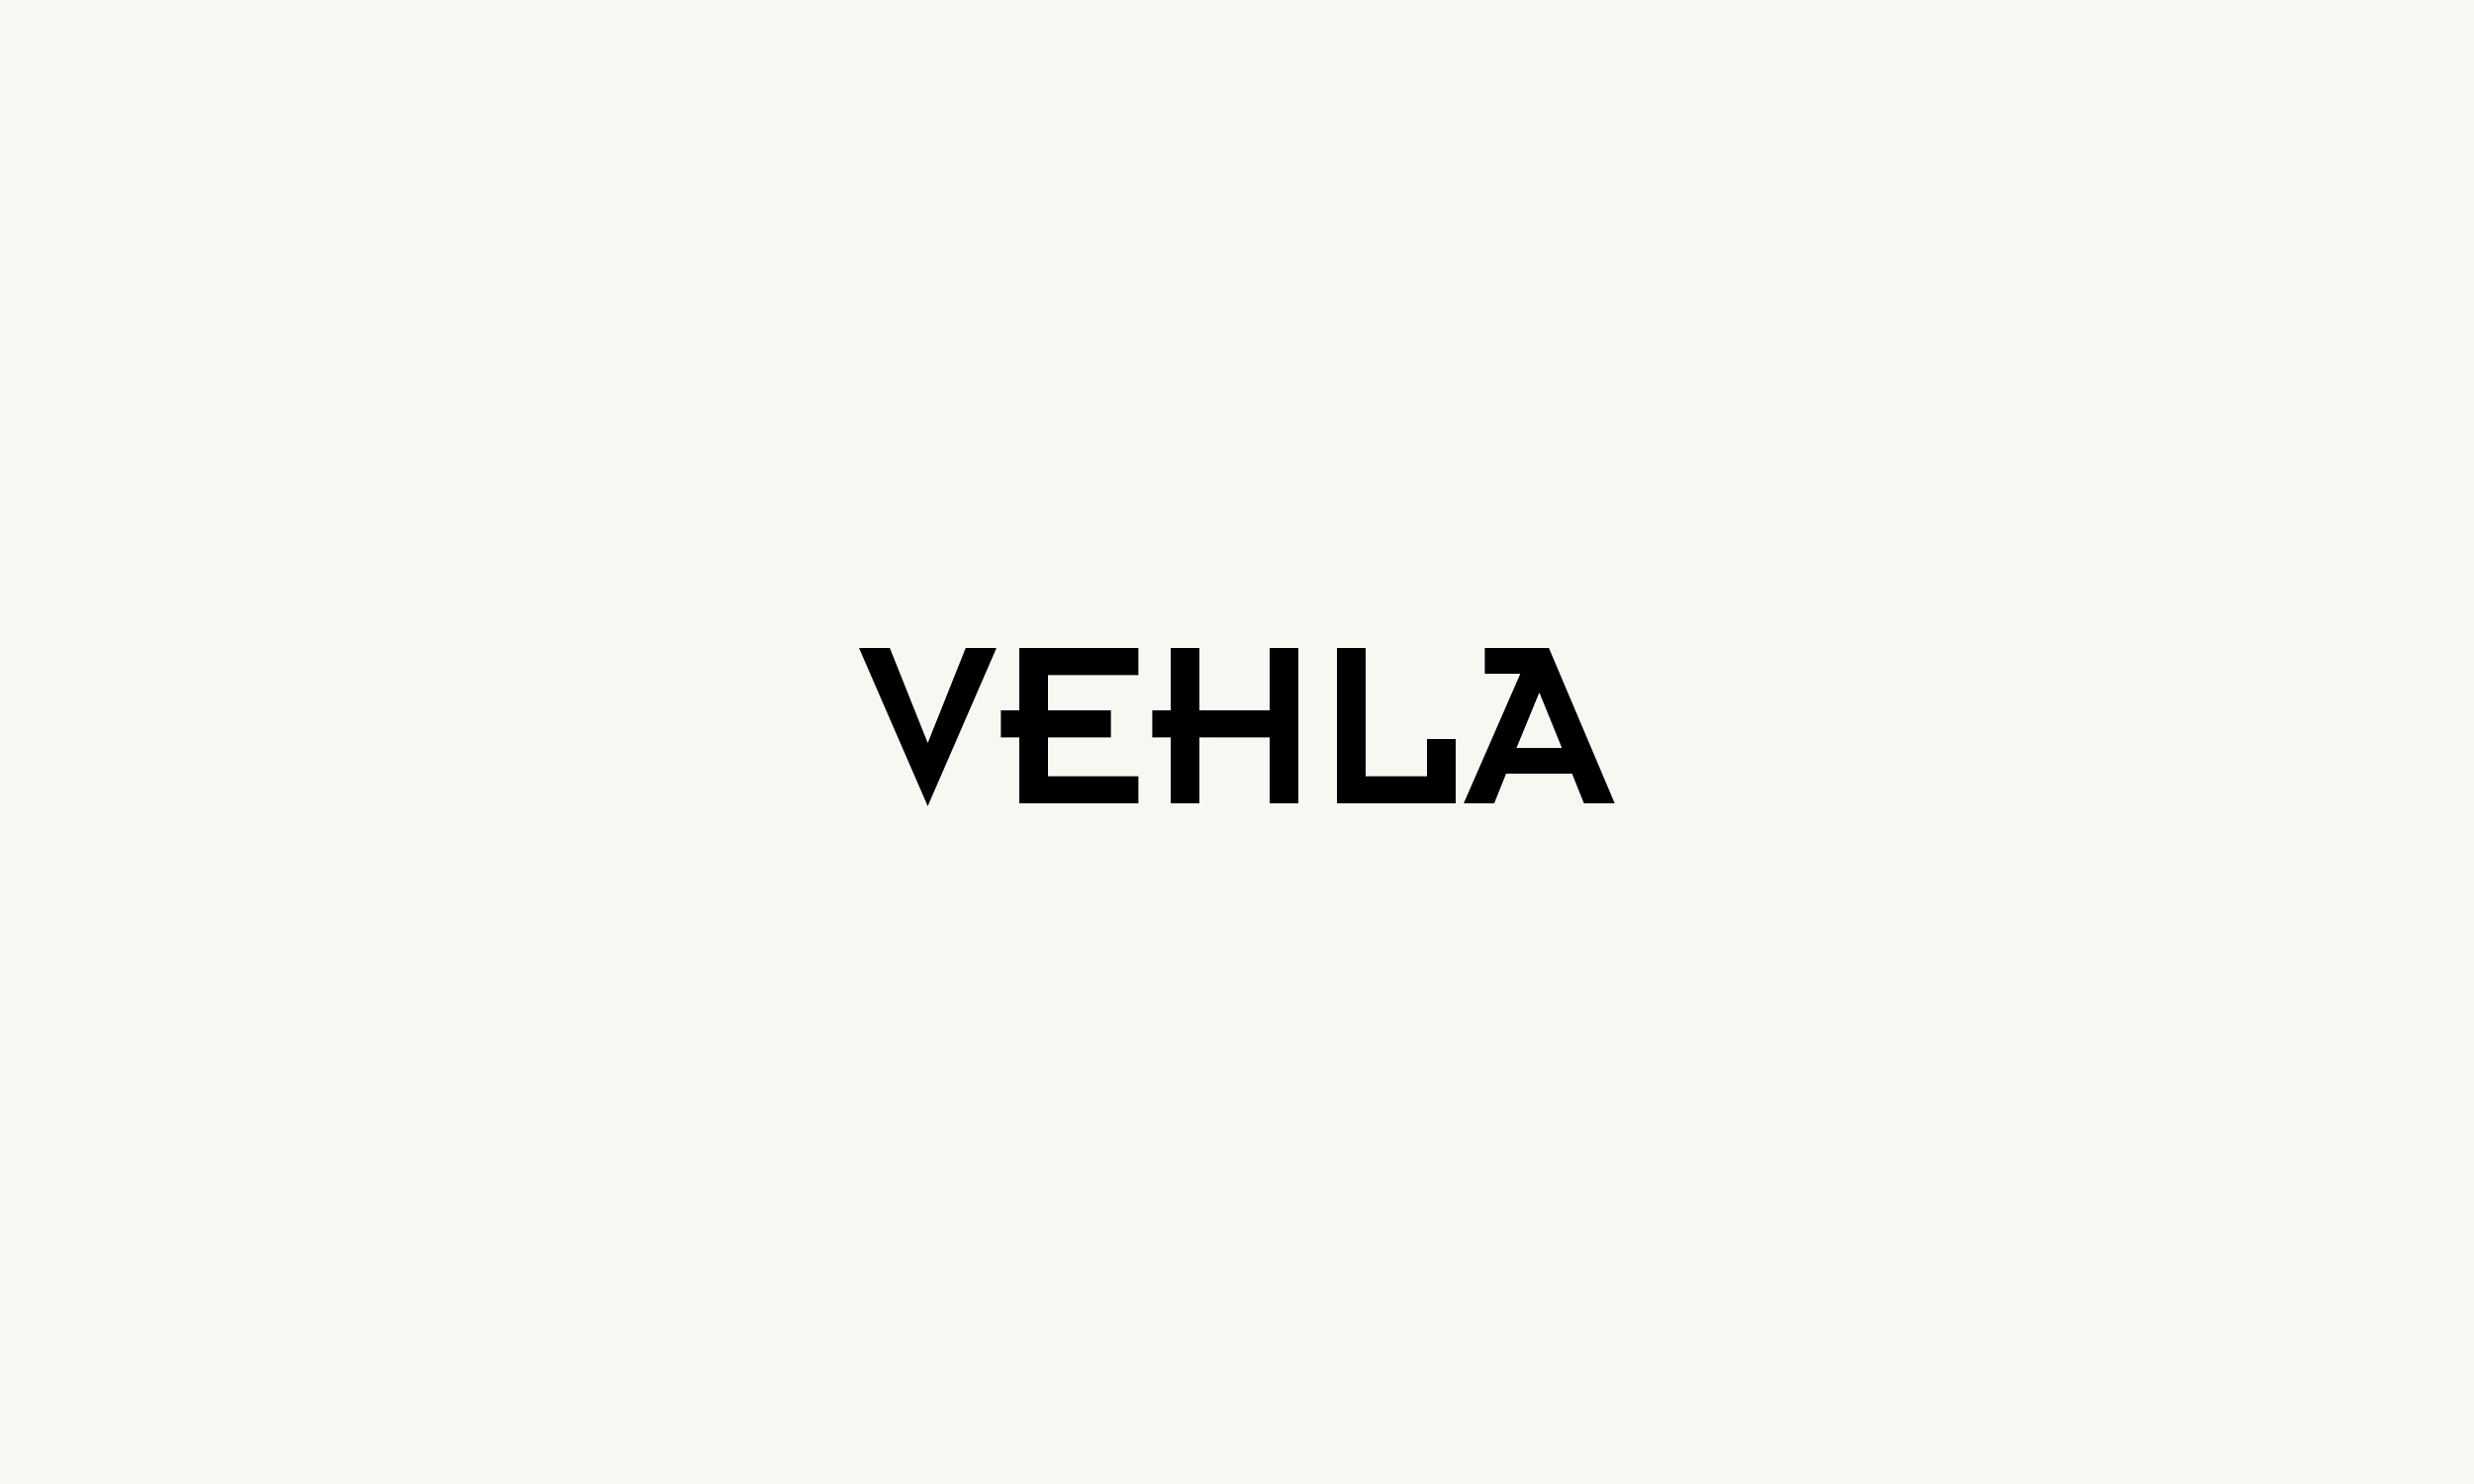 Nectar-&-Co-Vehla-Specs-Fashion-Logo Design.jpg